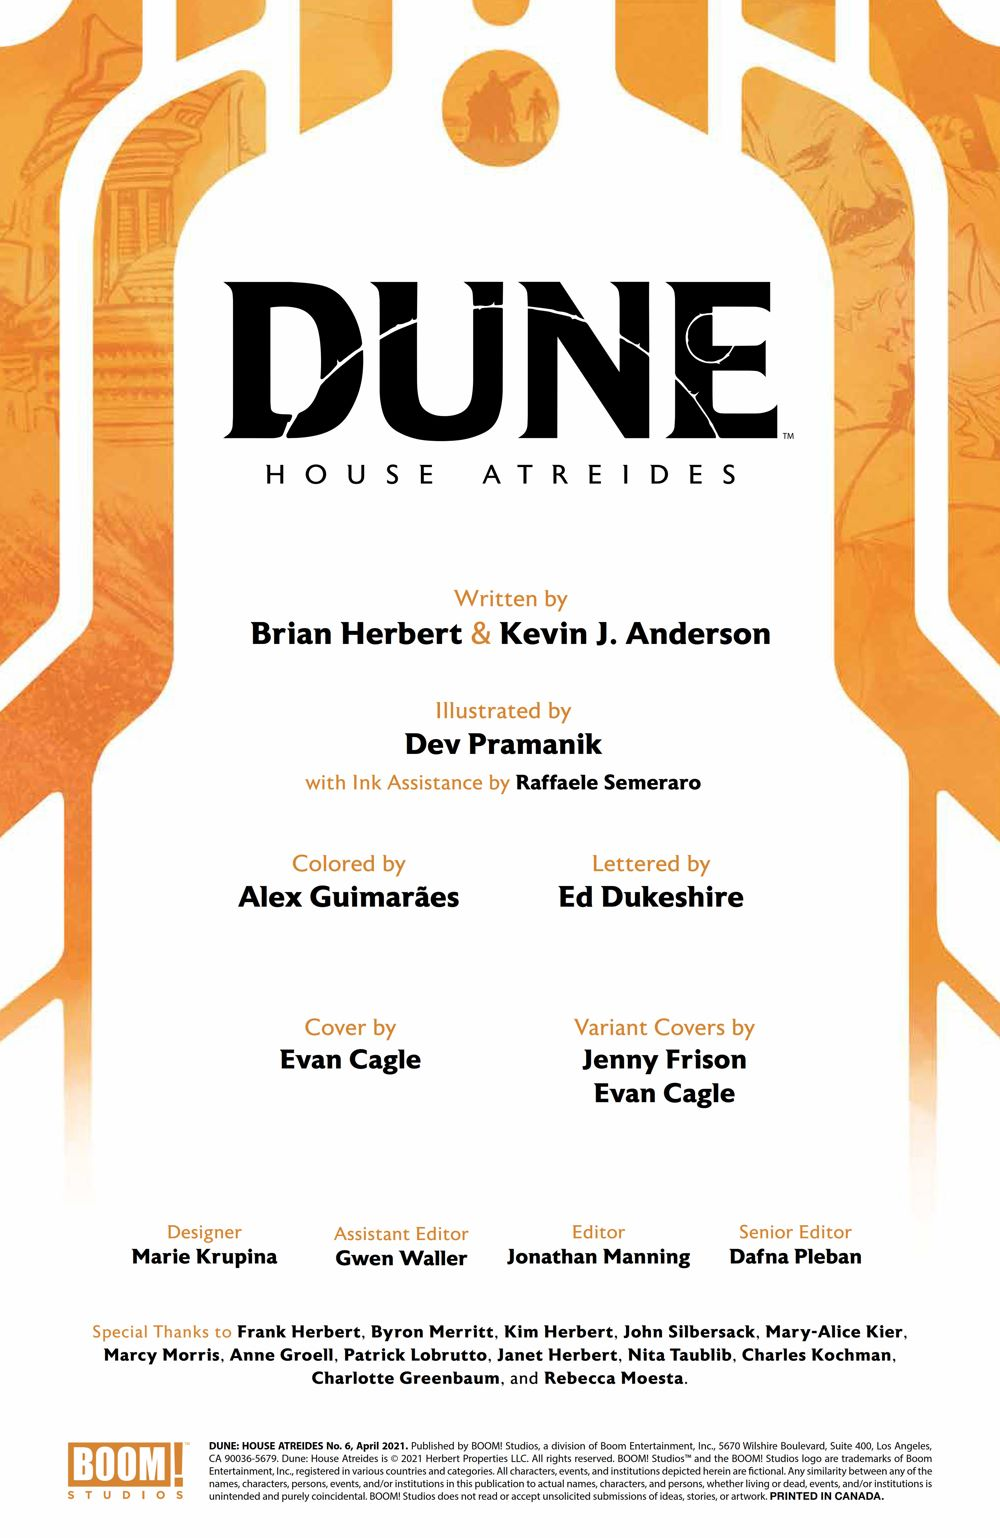 Dune_HouseAtreides_006_PRESS_2 ComicList Previews: DUNE HOUSE ATREIDES #6 (OF 12)